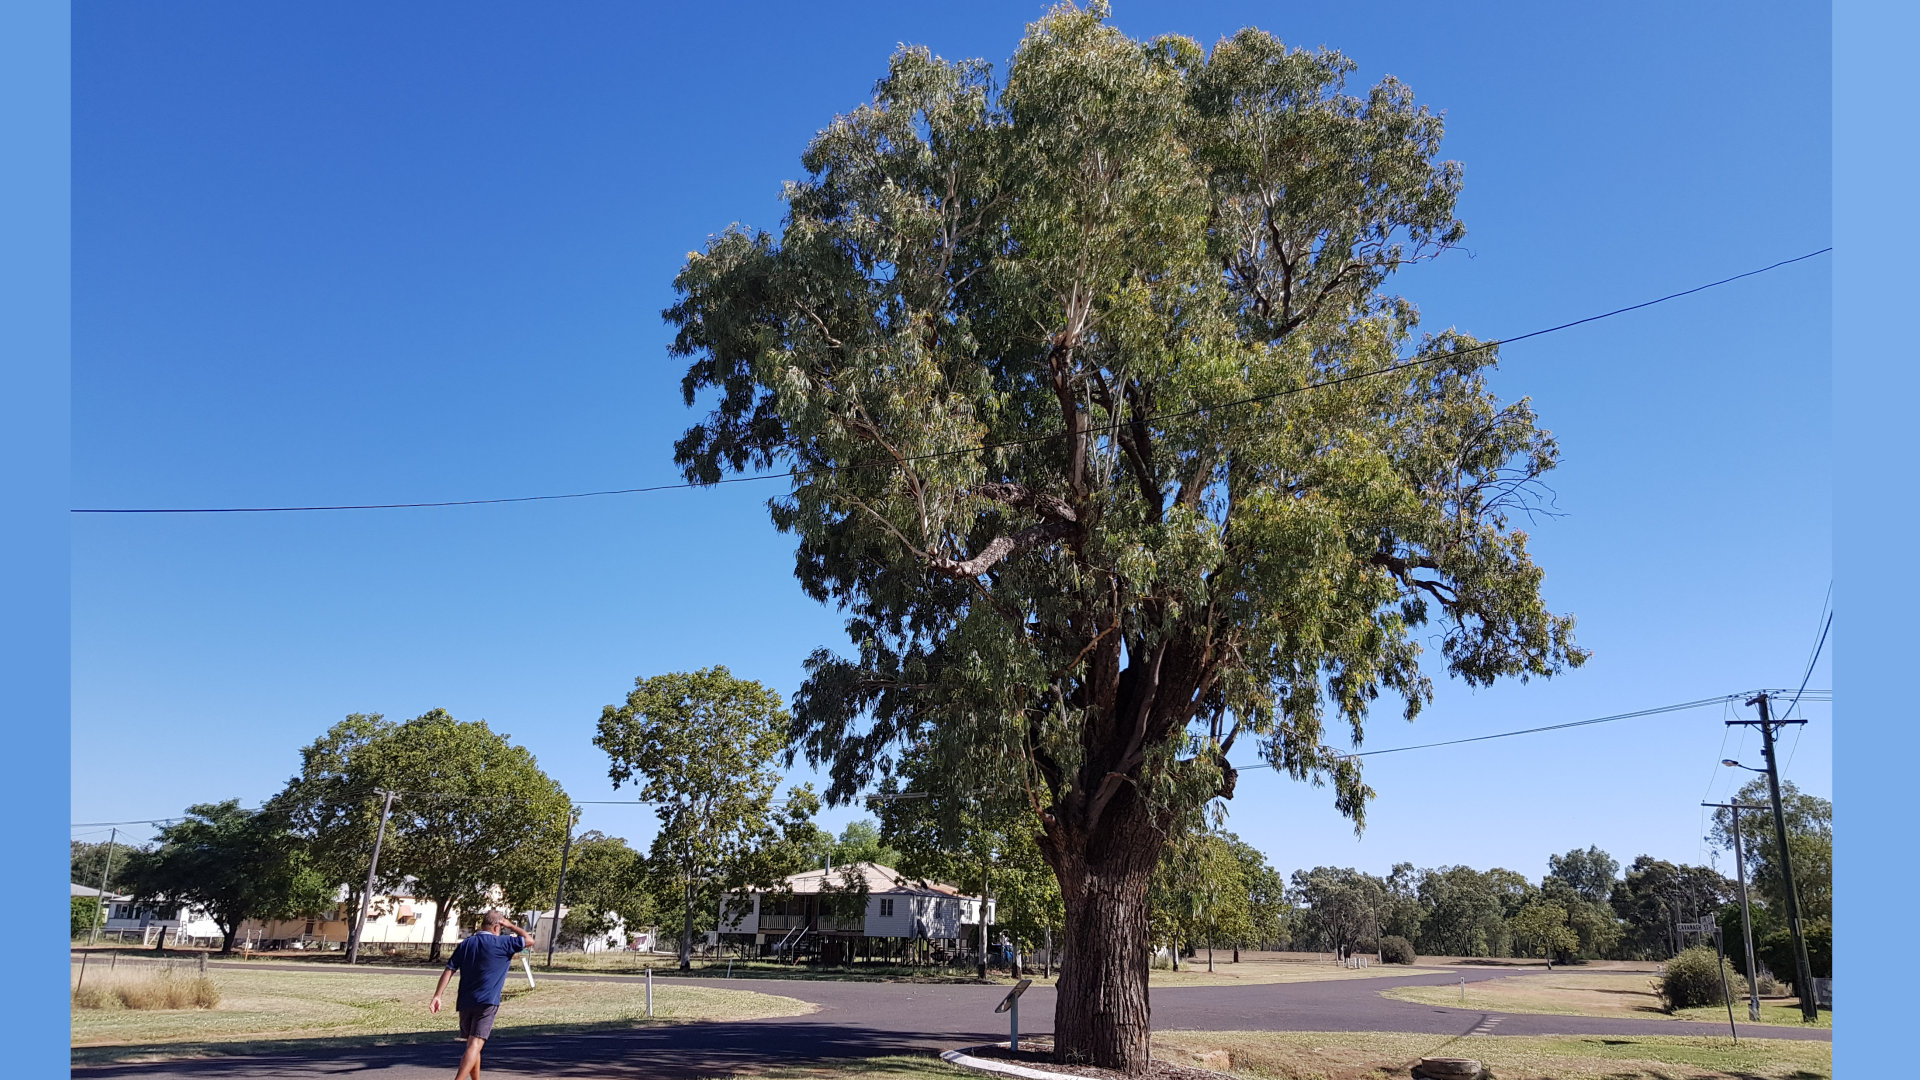 The Kenniff Tree, named after the brother bushrangers Patrick and James Kenniff (Pat and Jimmy). They tethered horses to the old Coolibah tree when visiting Augathella. The brothers were captured, one served 16 years goal, the other hung in Boggo Road Gaol.